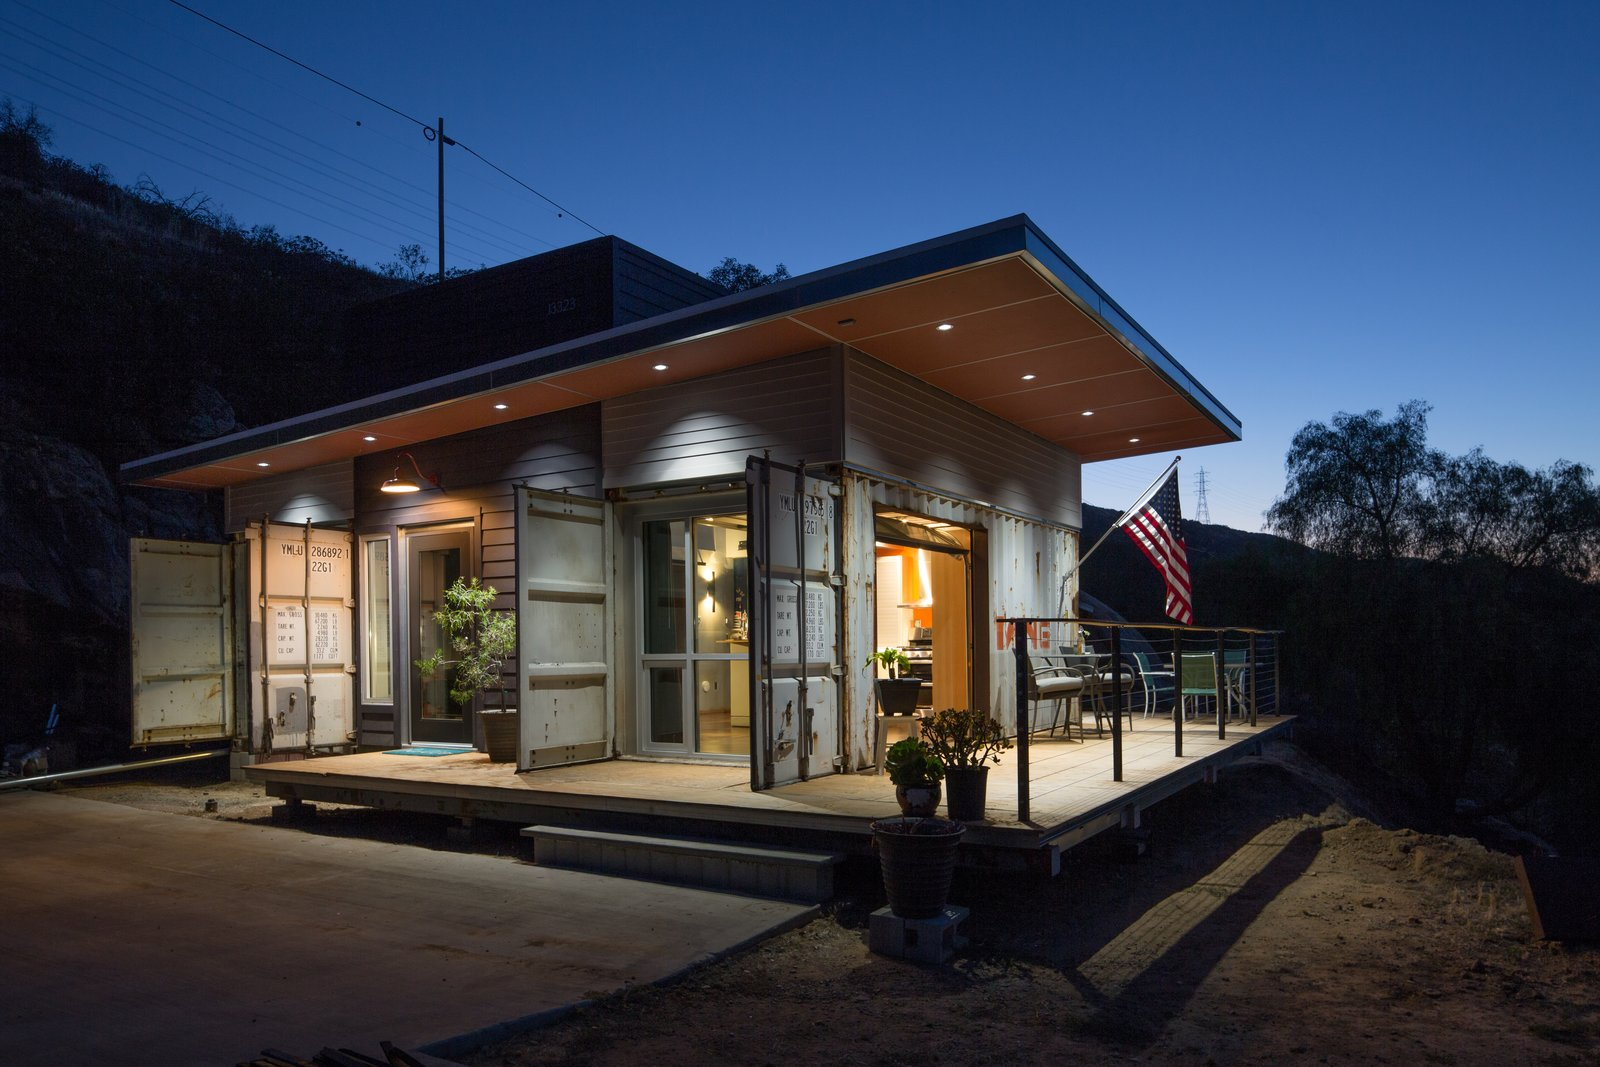 Mike McConkey, a superintendent for a general contractor, tasked Chris Bittner of OBR Architecture with designing an environmentally sensitive home for he and his wife in San Diego County. Utilizing three shipping containers and a bevy of cost-effective appliances, they managed to limit the budget to $160,000. Tagged: Exterior, House, Metal Siding Material, Flat RoofLine, and Shipping Container Building Type.  Shipping Containers by Dwell from Modern Homes In and Around San Diego